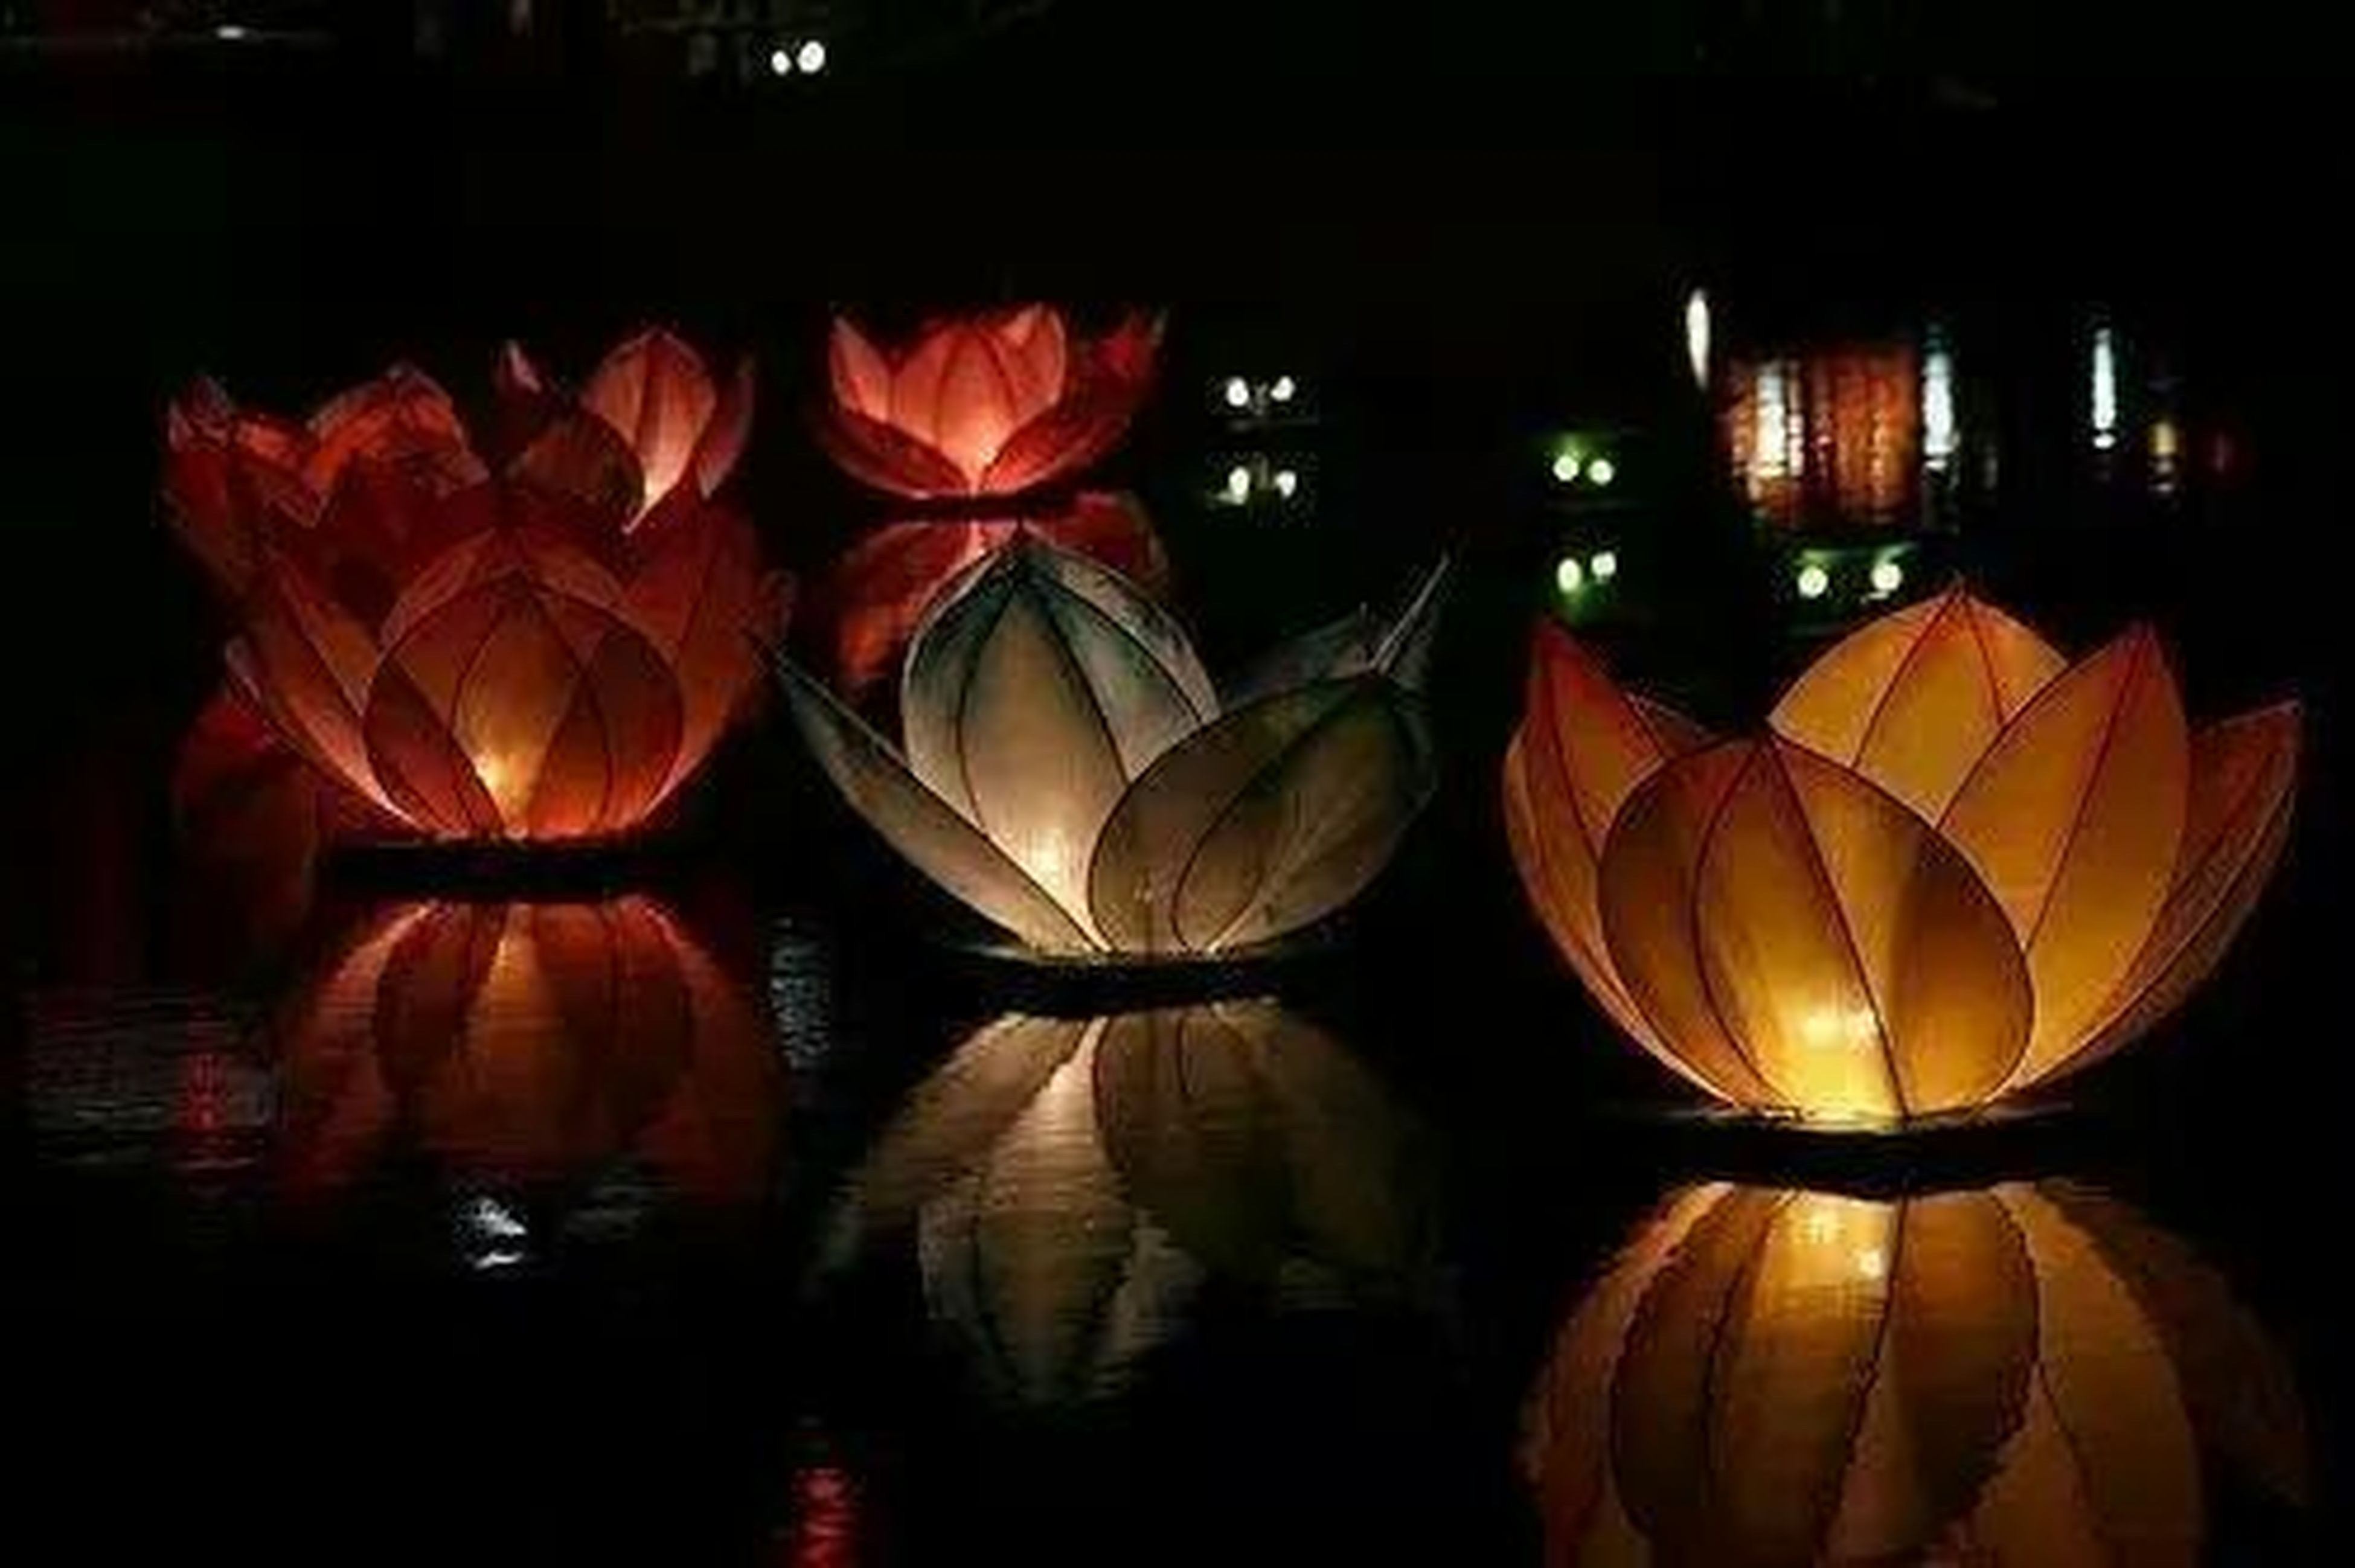 night, illuminated, decoration, red, orange color, hanging, outdoors, multi colored, no people, lantern, building exterior, large group of objects, abundance, celebration, variation, in a row, reflection, lighting equipment, dark, nature